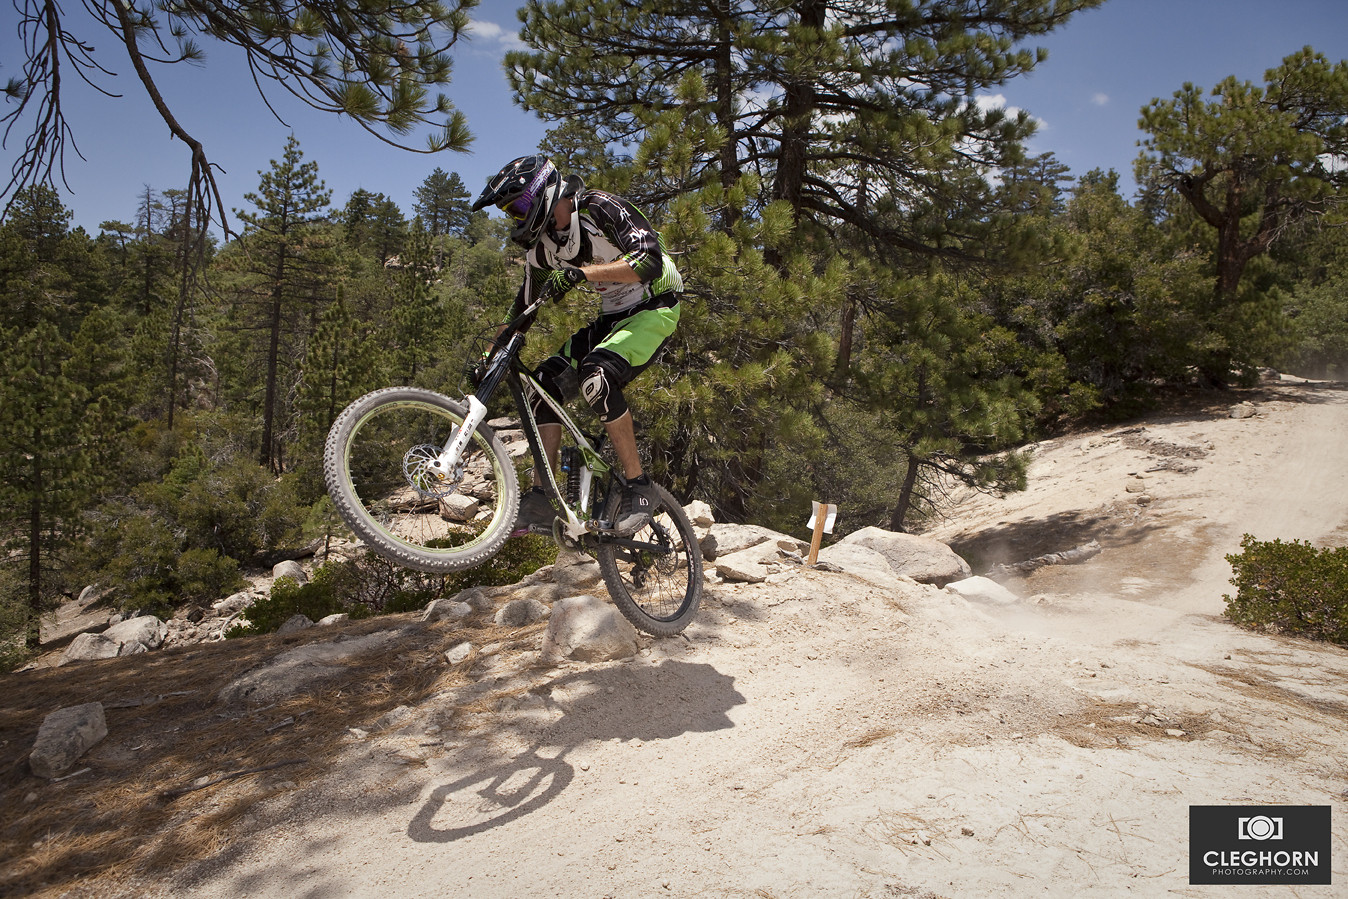 MG 0468 - Cleghorn Photography - Mountain Biking Pictures - Vital MTB